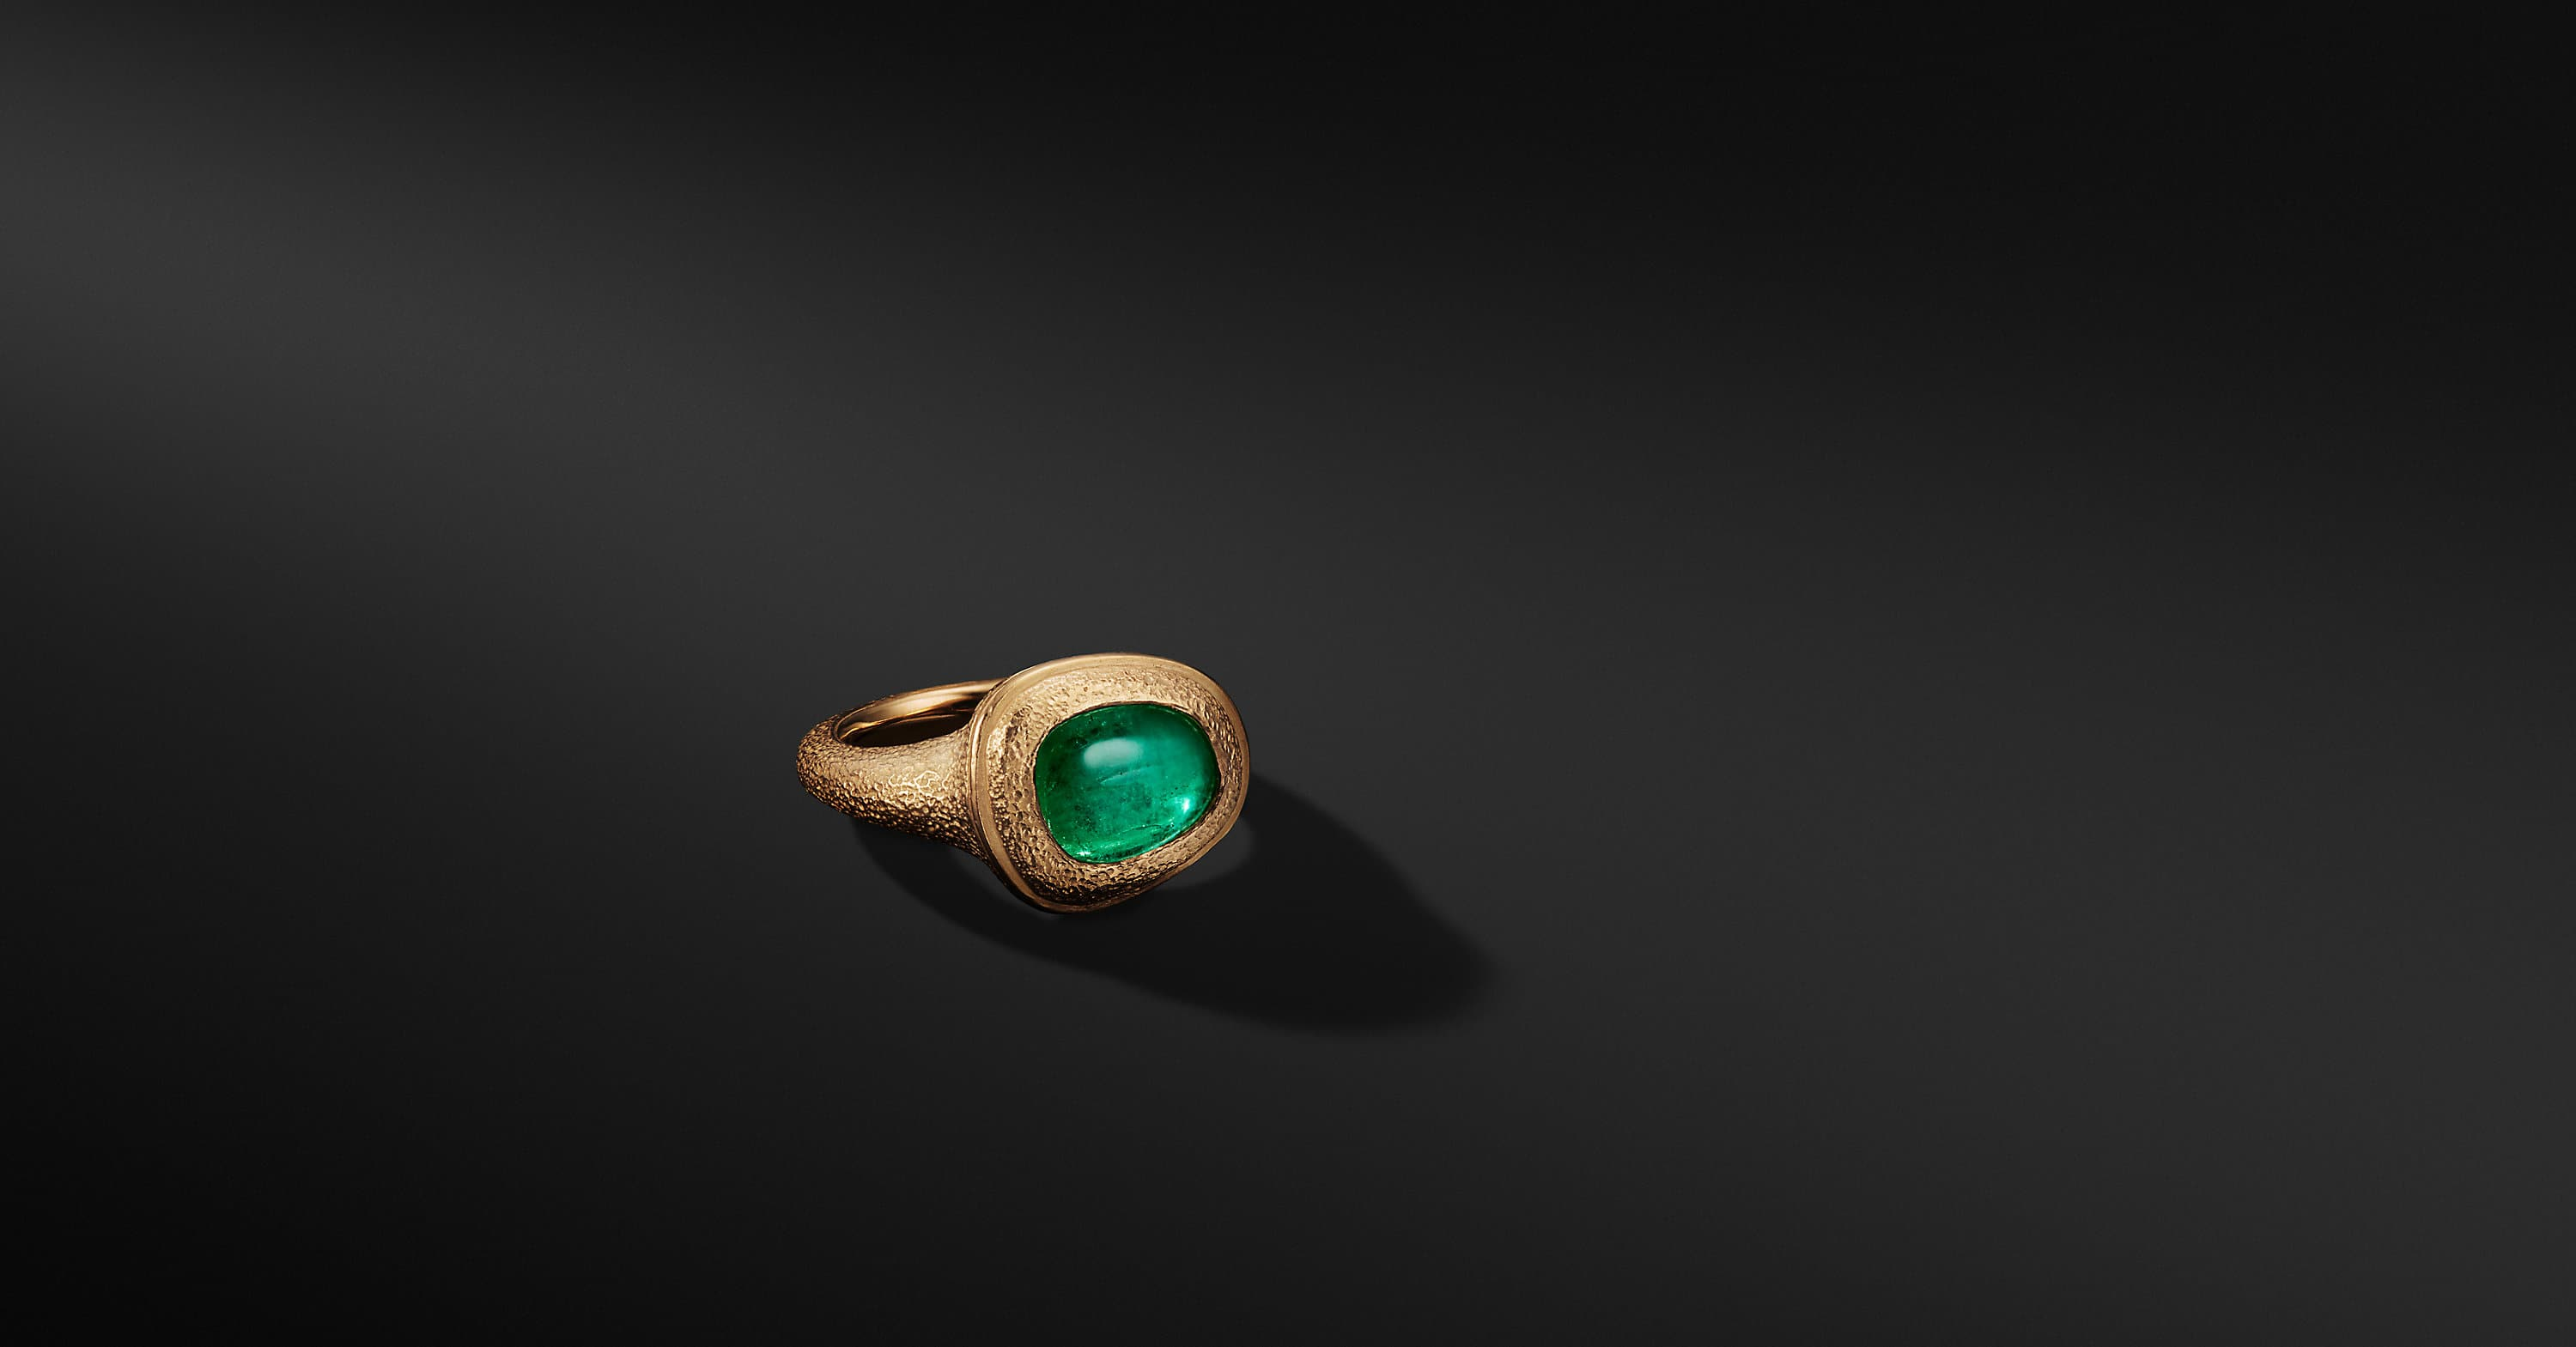 Shipwreck Signet Ring In 22k Gold